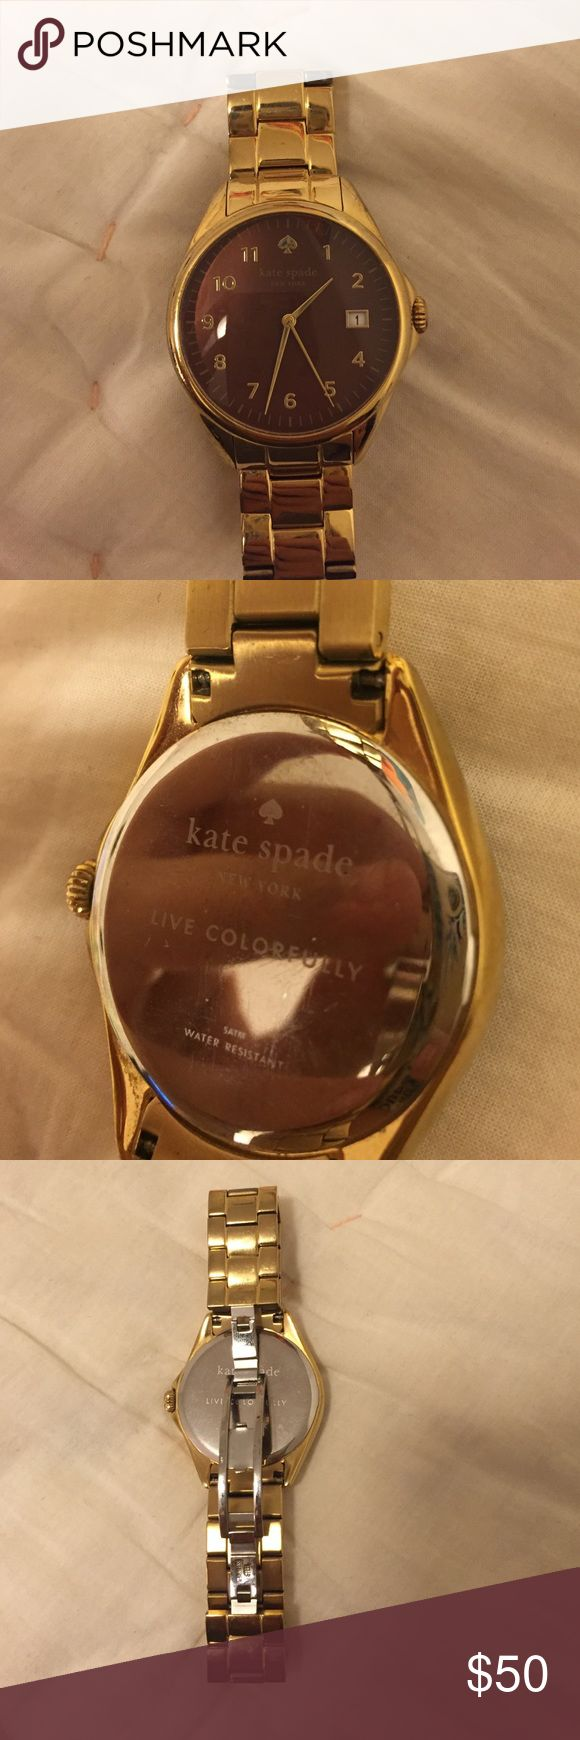 Kate Spade gold watch Kate Spade gold watch, chocolate brown face, from 2014, few scratches, needs to battery kate spade Accessories Watches